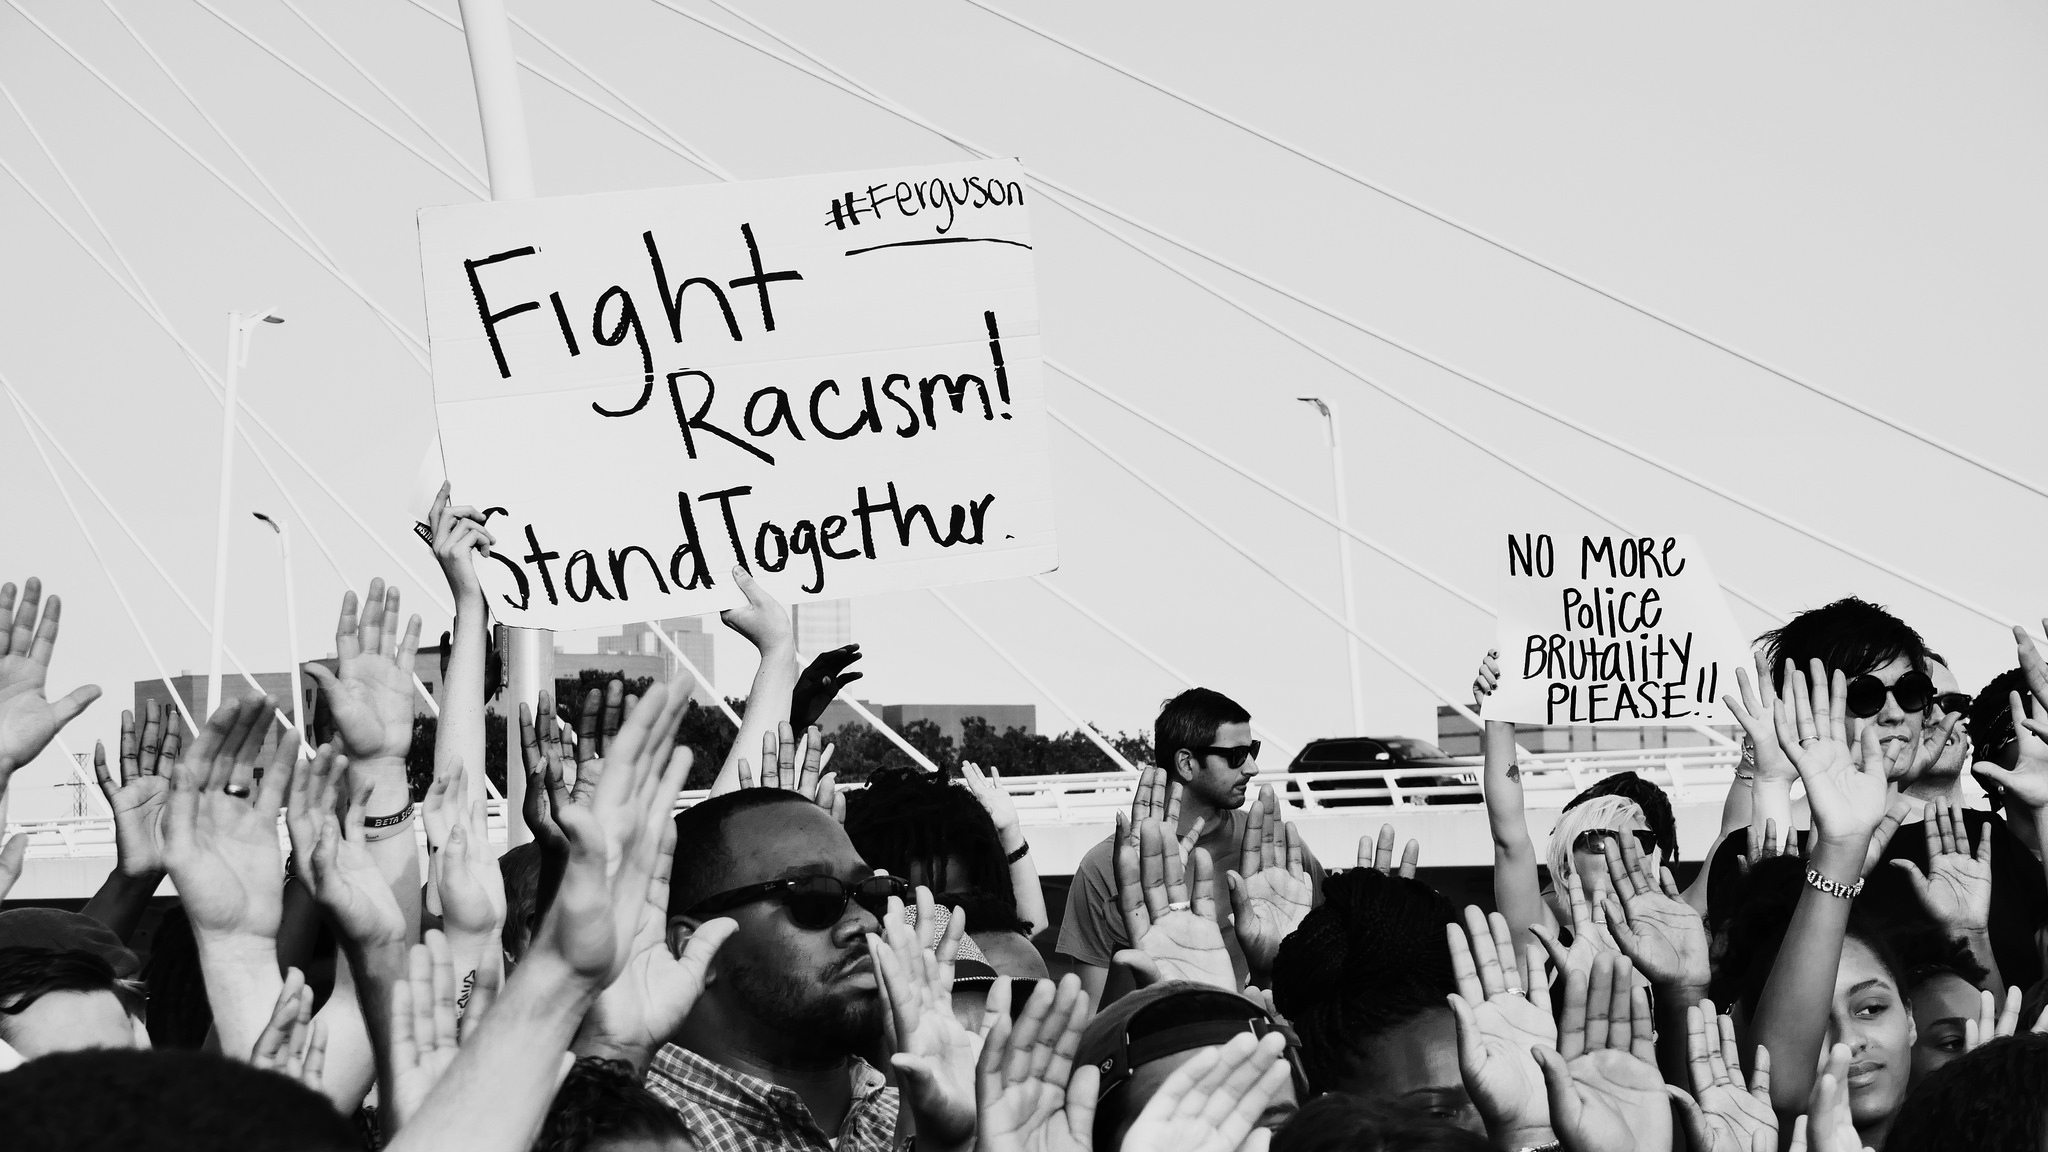 From Gaza to Ferguson: Exposing the Toolbox of Racist Repression